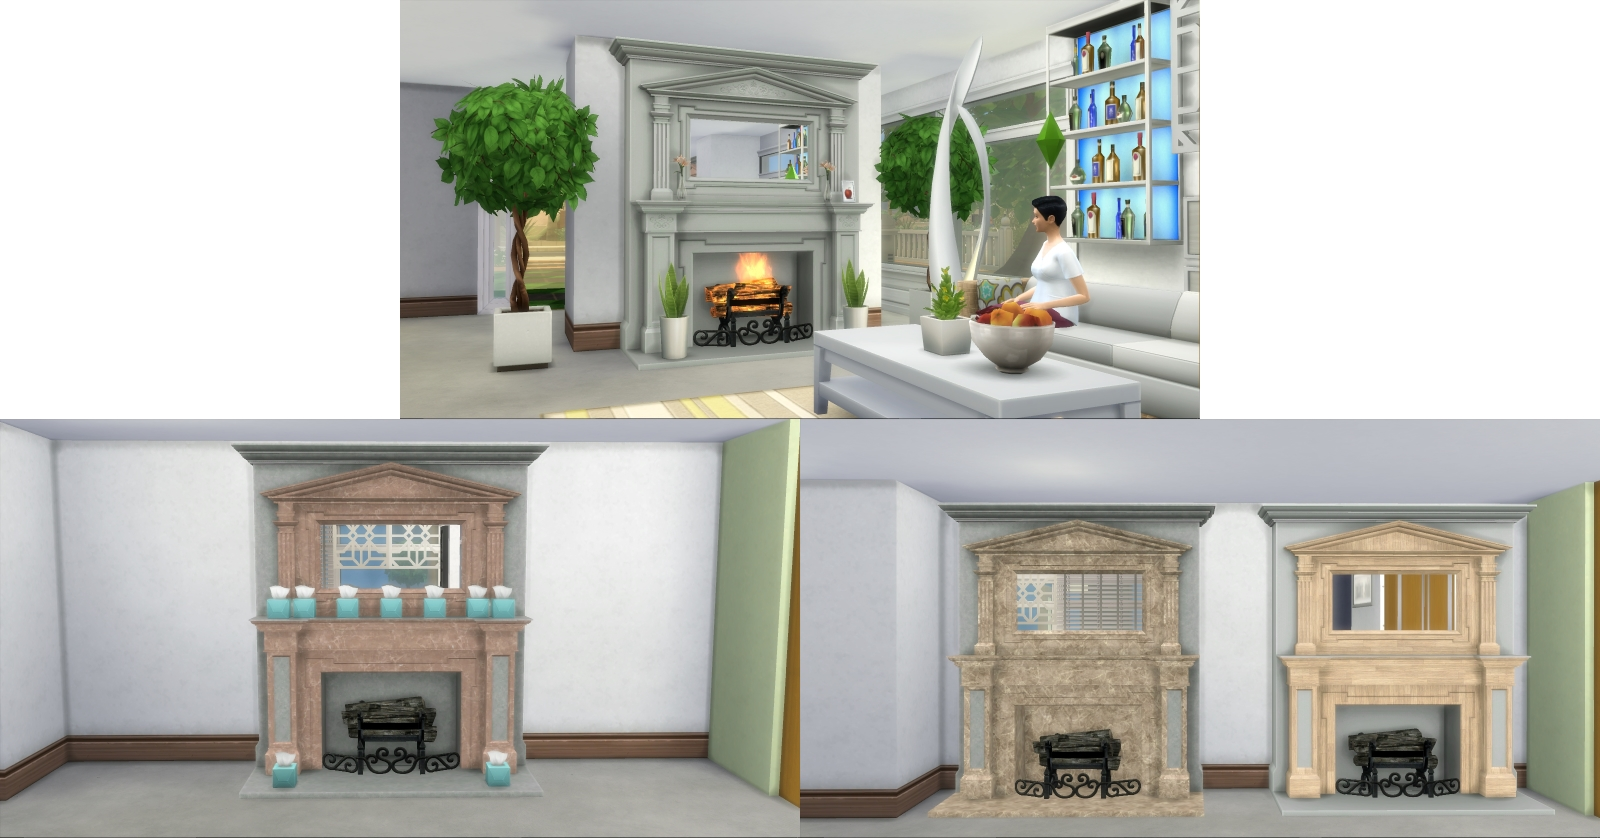 Mod The Sims - Fire Places 2